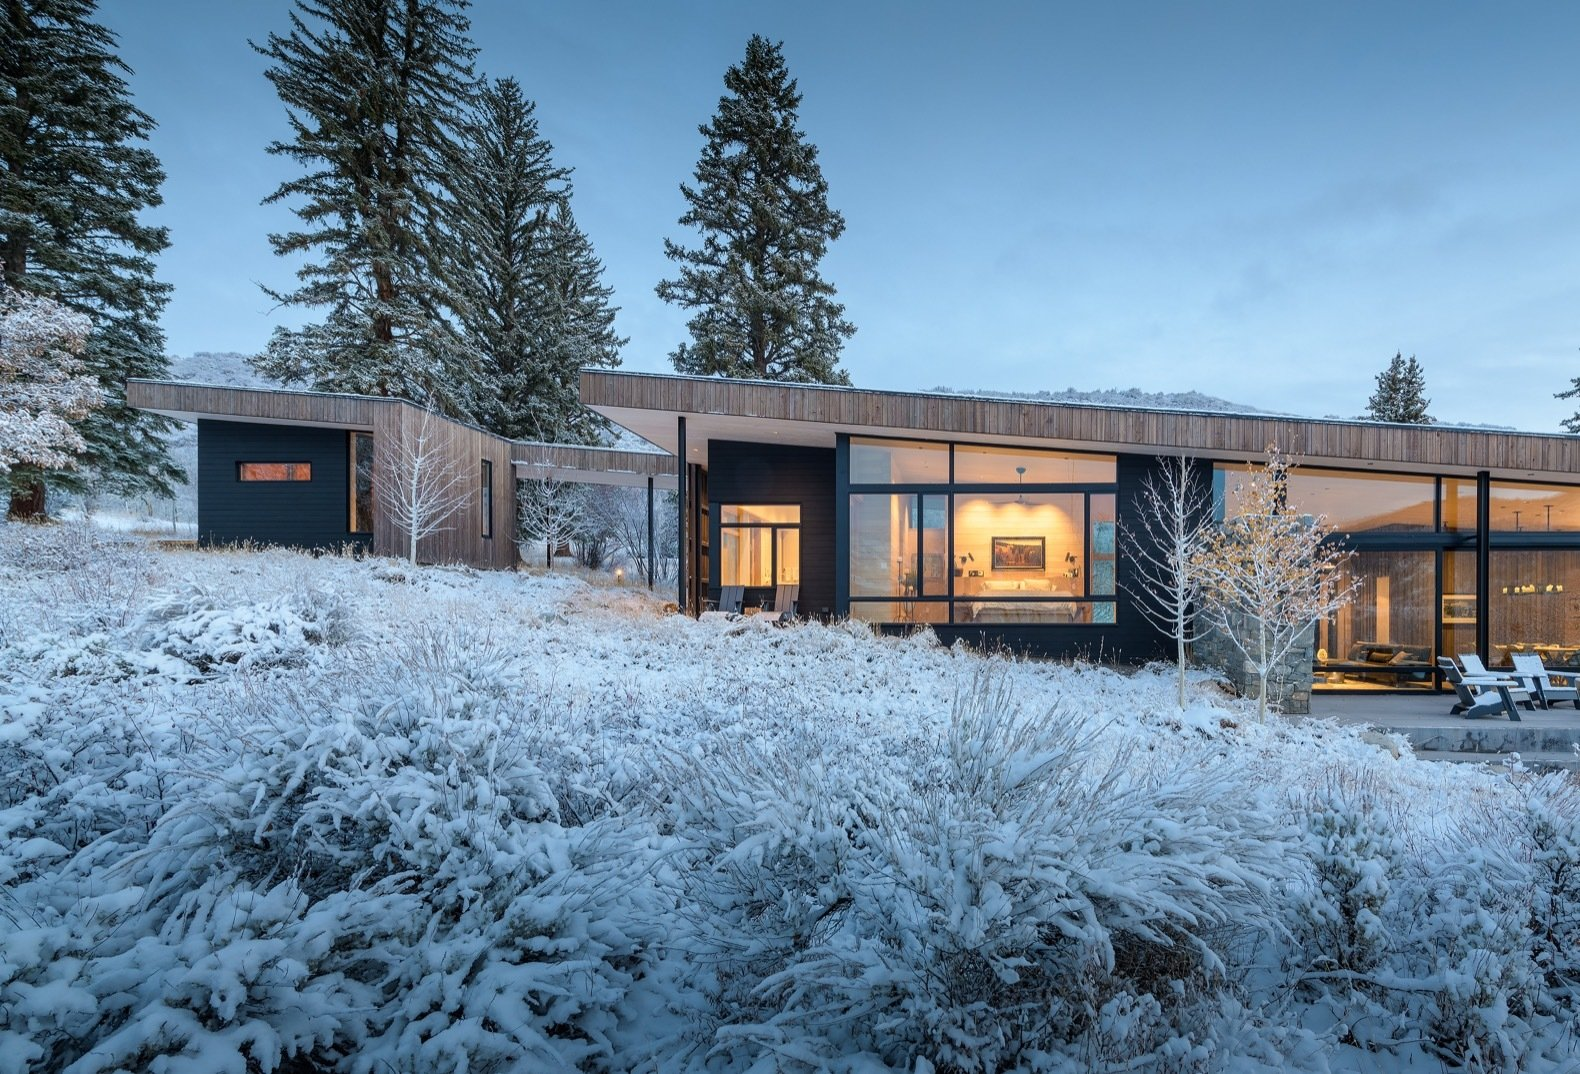 Set on an east-west axis, the home stays cool with shading south-facing glass, minimal west-facing glass, and operable windows that allow for natural ventilation. Energy recovery ventilators also bring fresh air into the home.